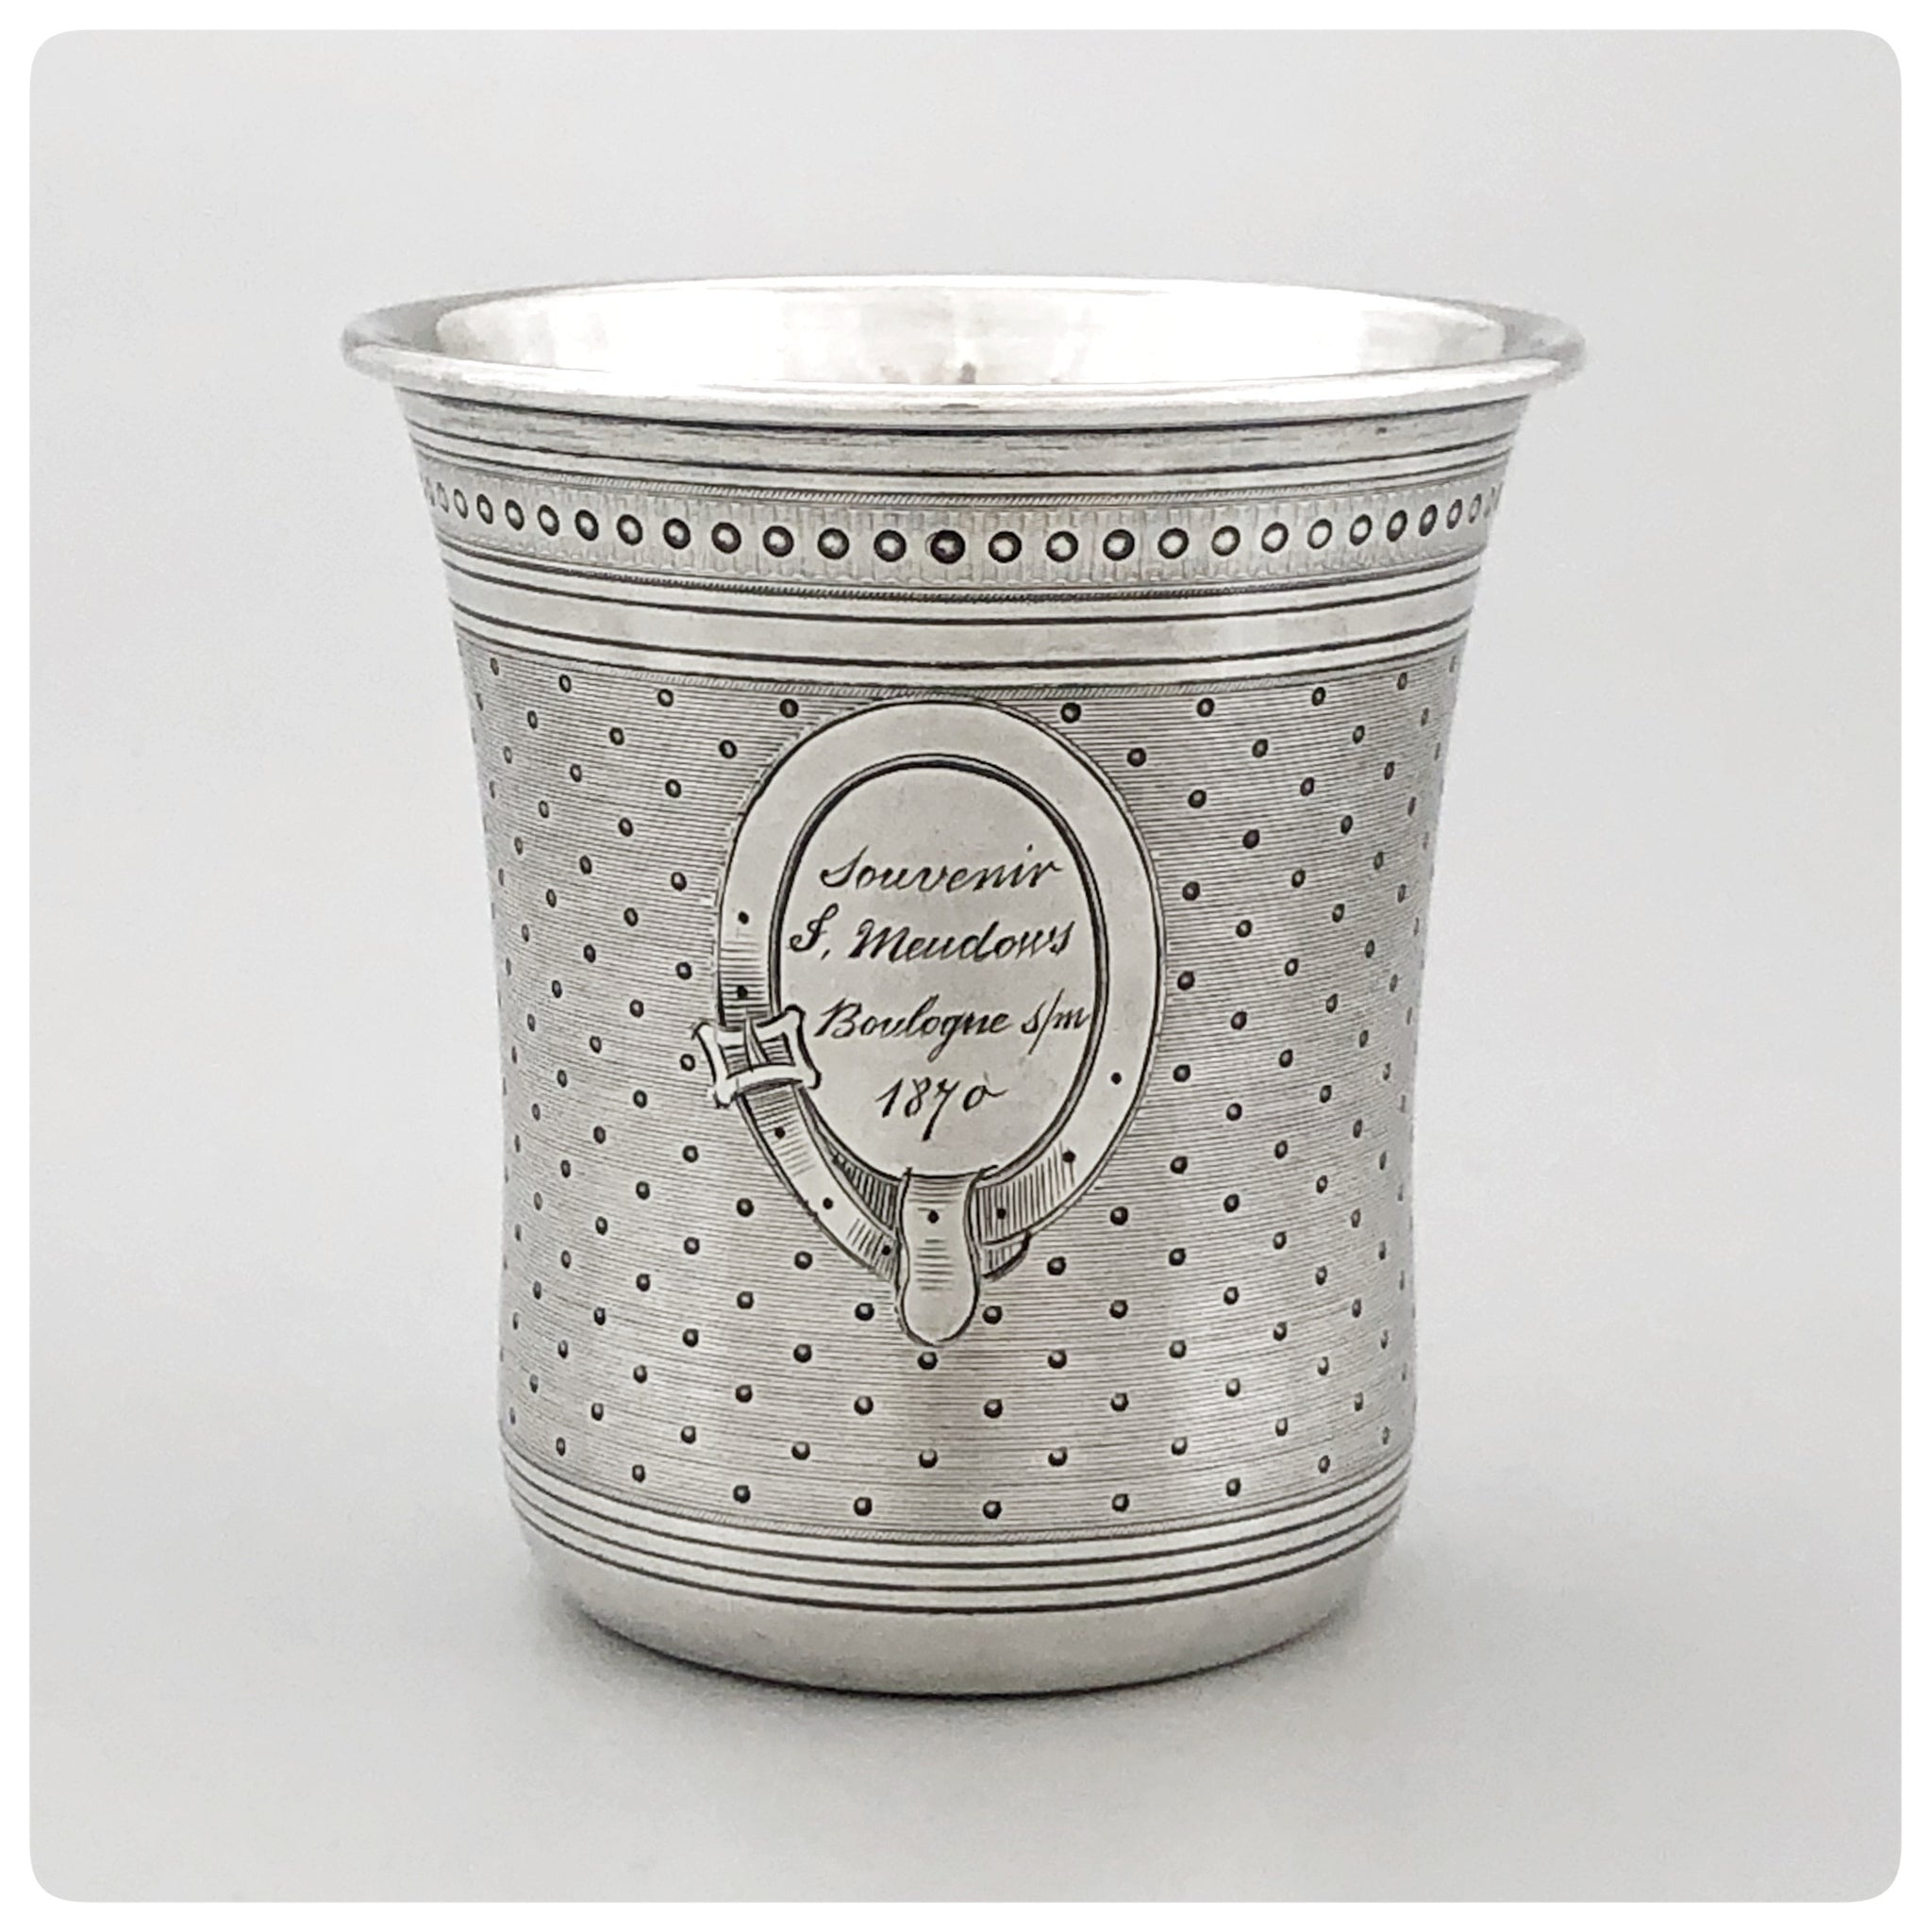 First  Standard (950/1000) Solid Silver Beaker, Pellerin and Lemoing, Paris, 1870